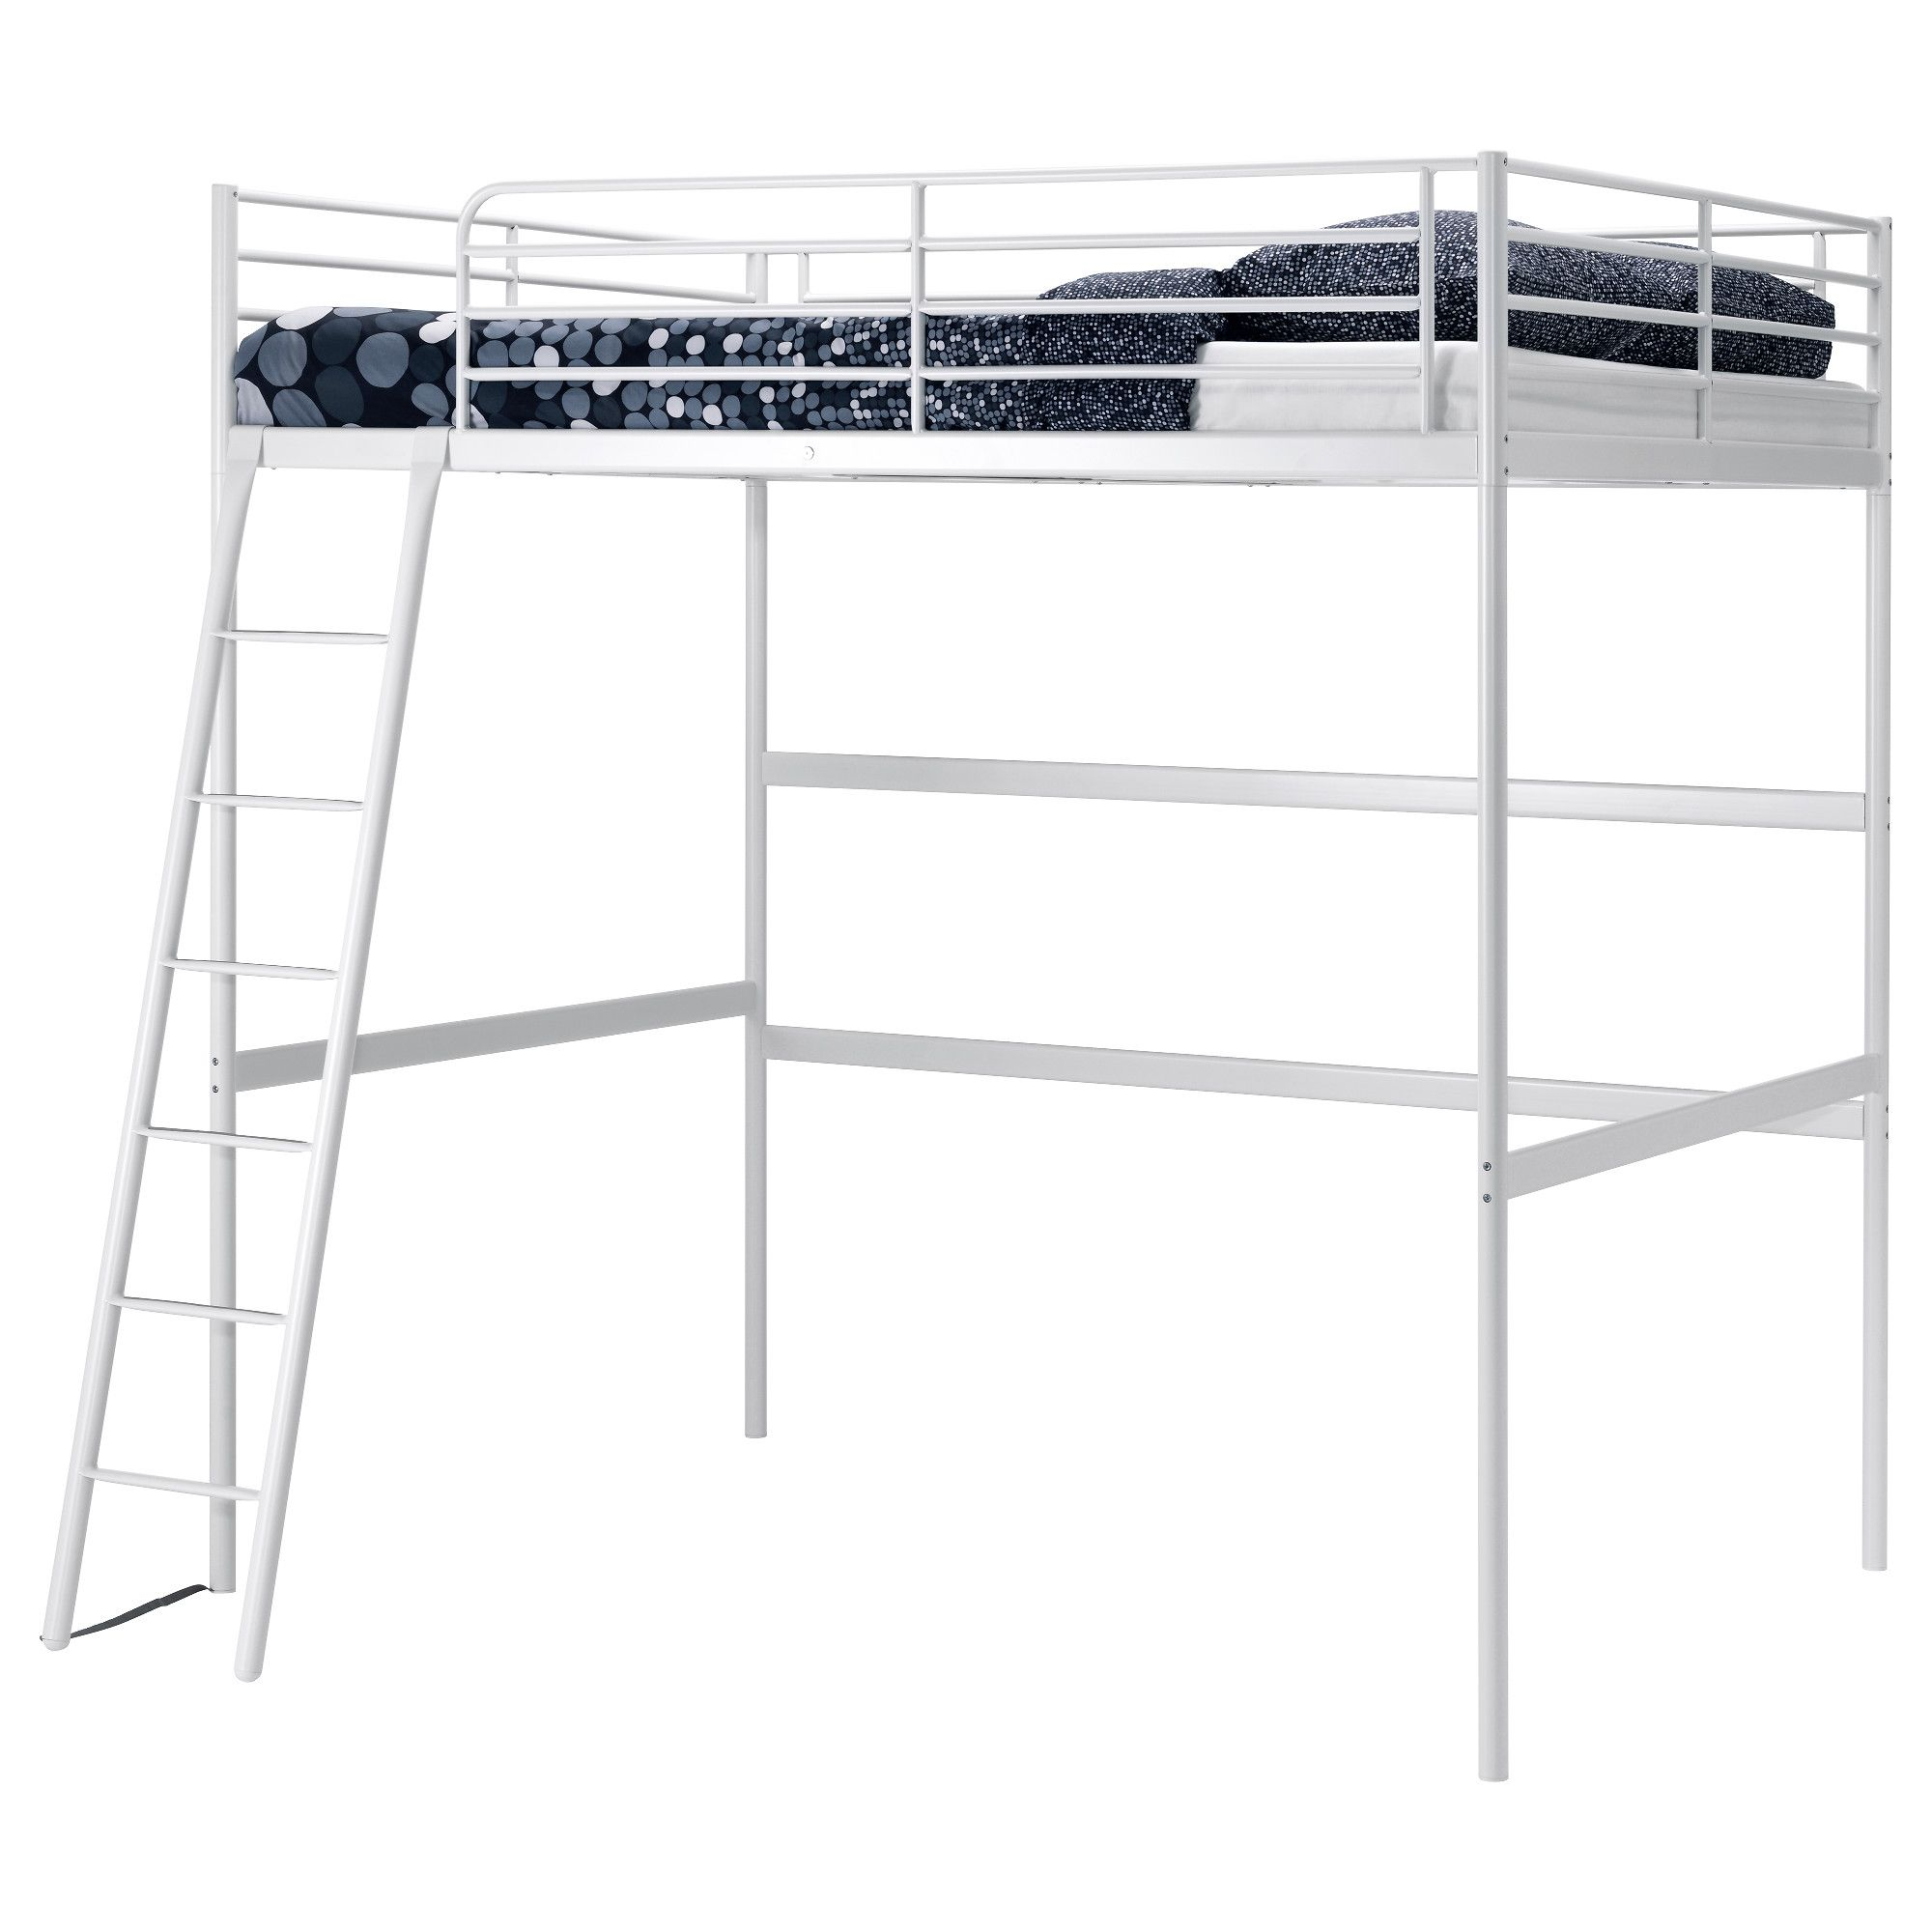 TromsÖ Loft Bed Frame Ikea White Family Member Price Regular 169 00price Undefined While Supplies